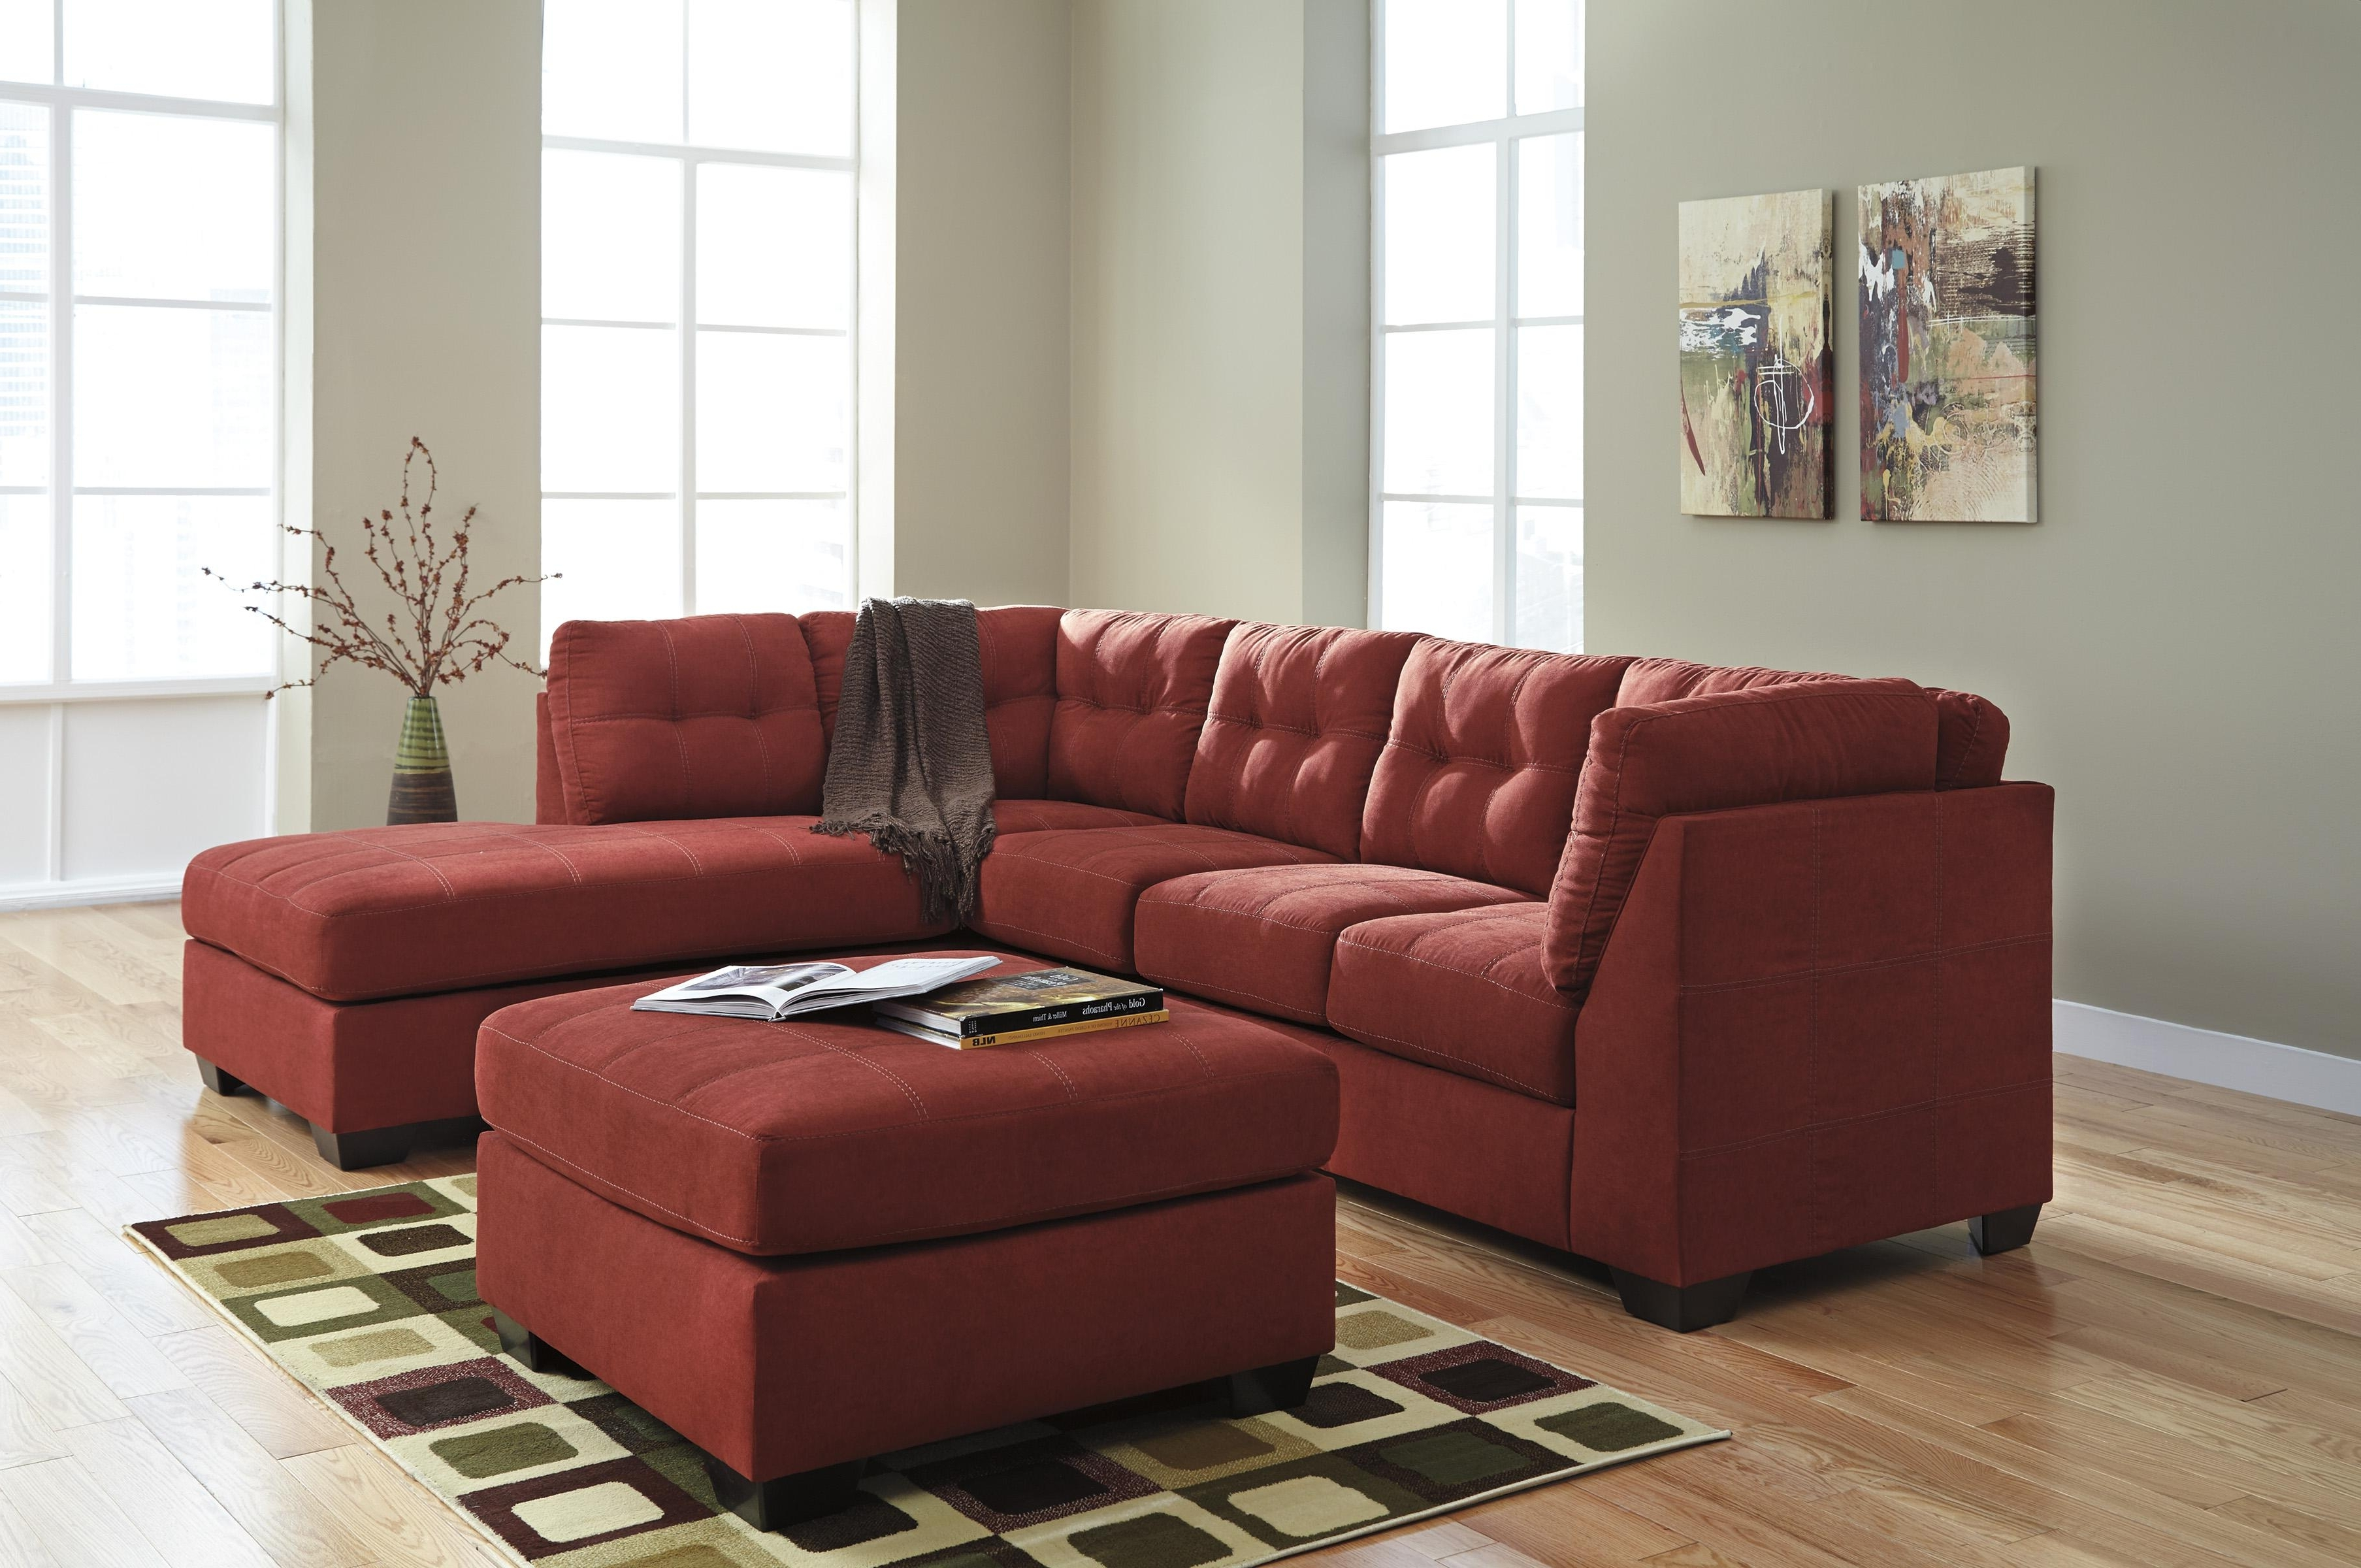 2018 Furniture : 5060 Recliner Sectional Sofa Costco $699 Corner Couch Intended For Nz Sectional Sofas (Gallery 8 of 20)